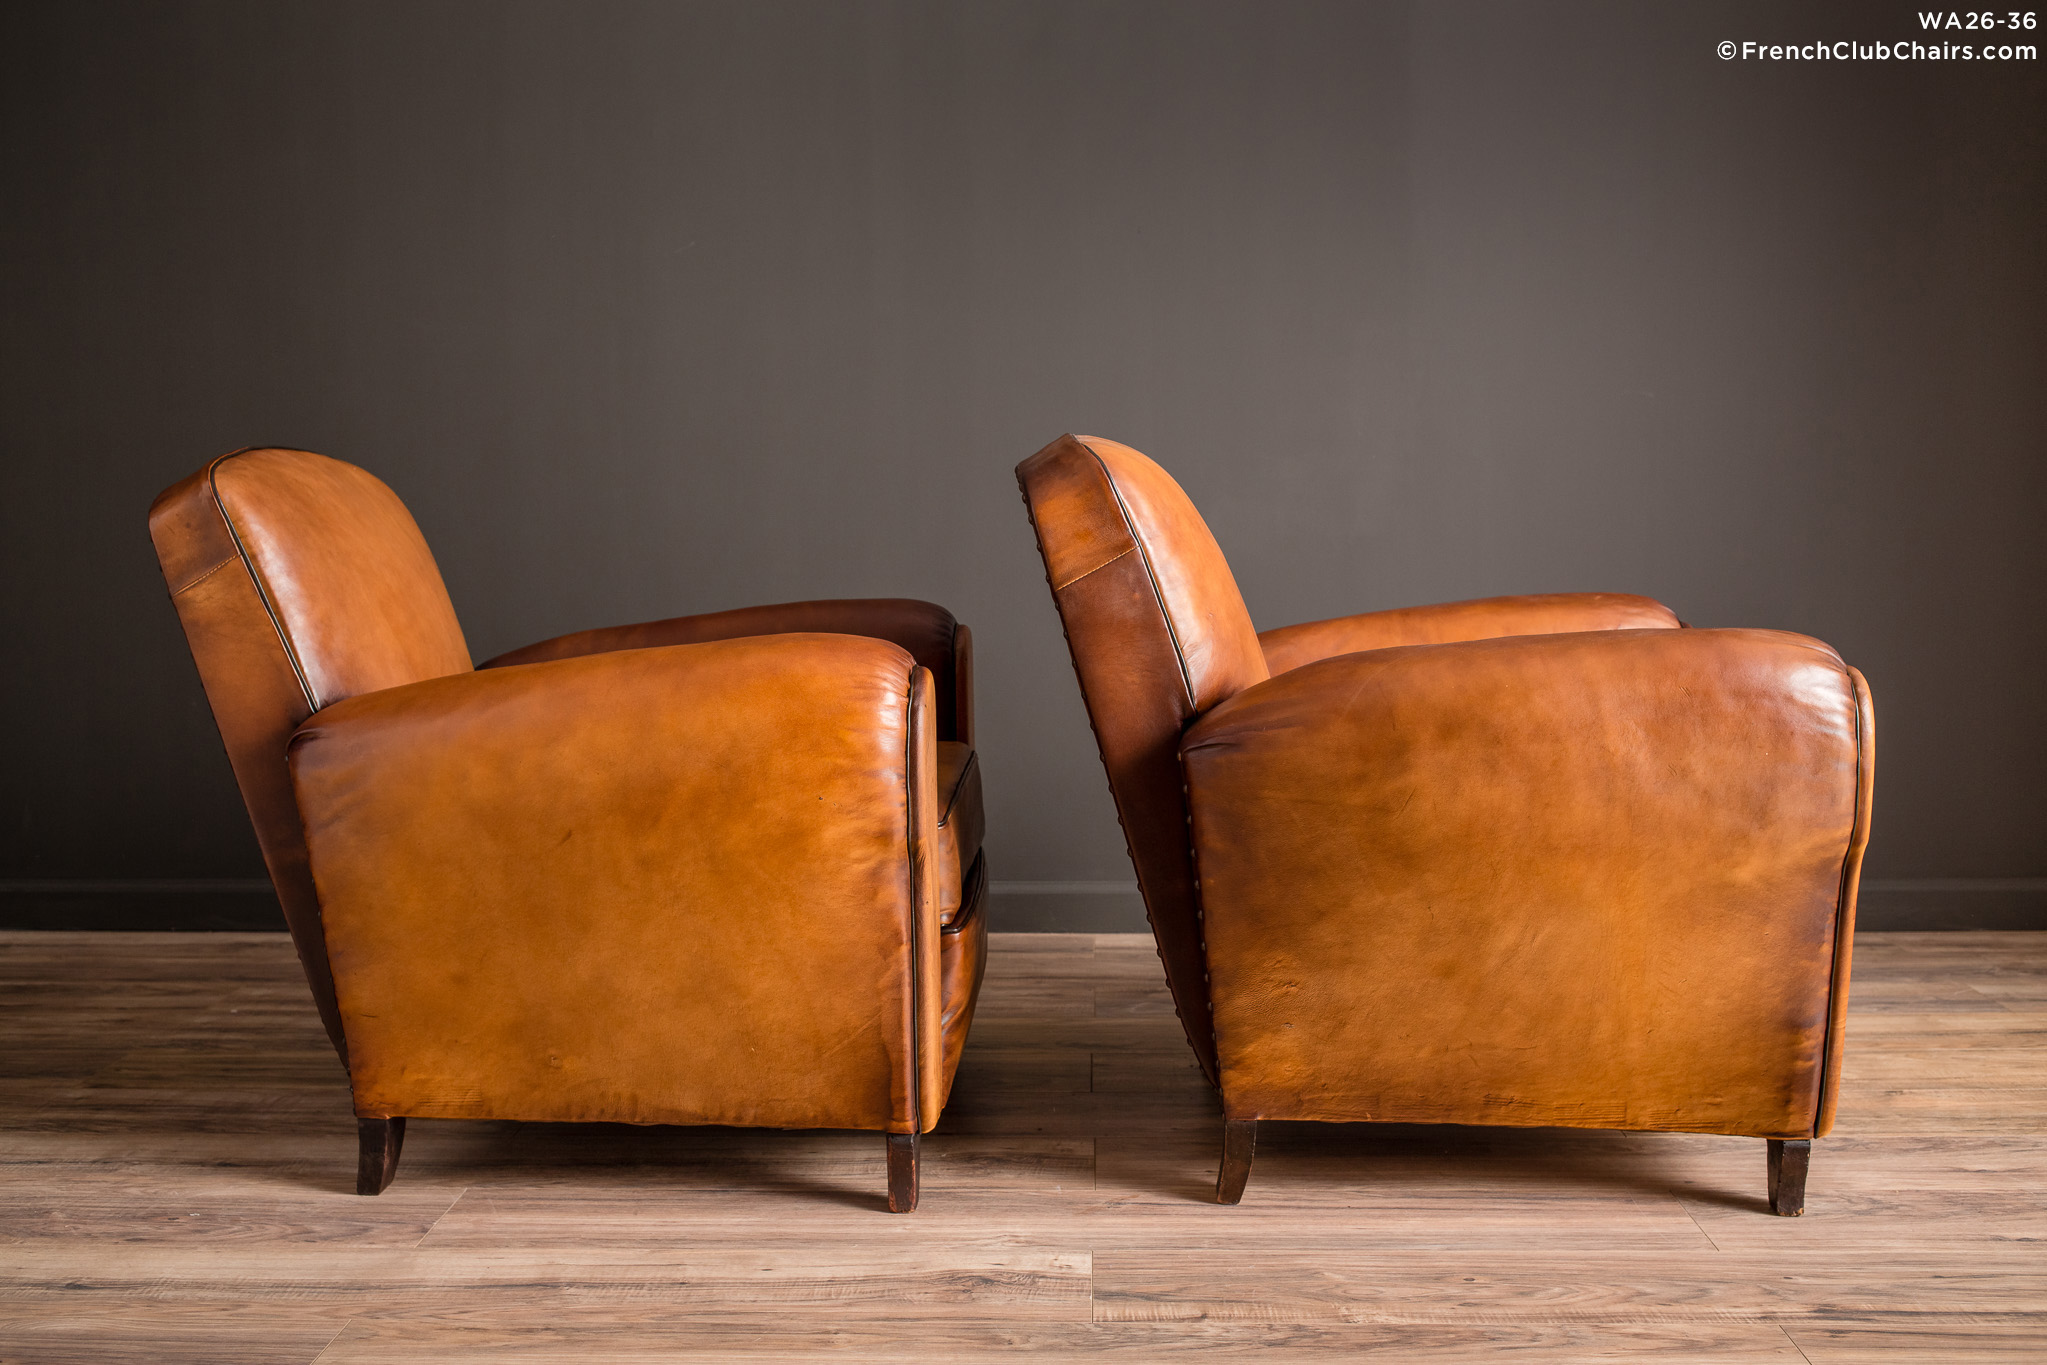 WA_26-36_Valerie_Library_Pair_R_3RT-v01-williams-antiks-leather-french-club-chair-wa_fcccom